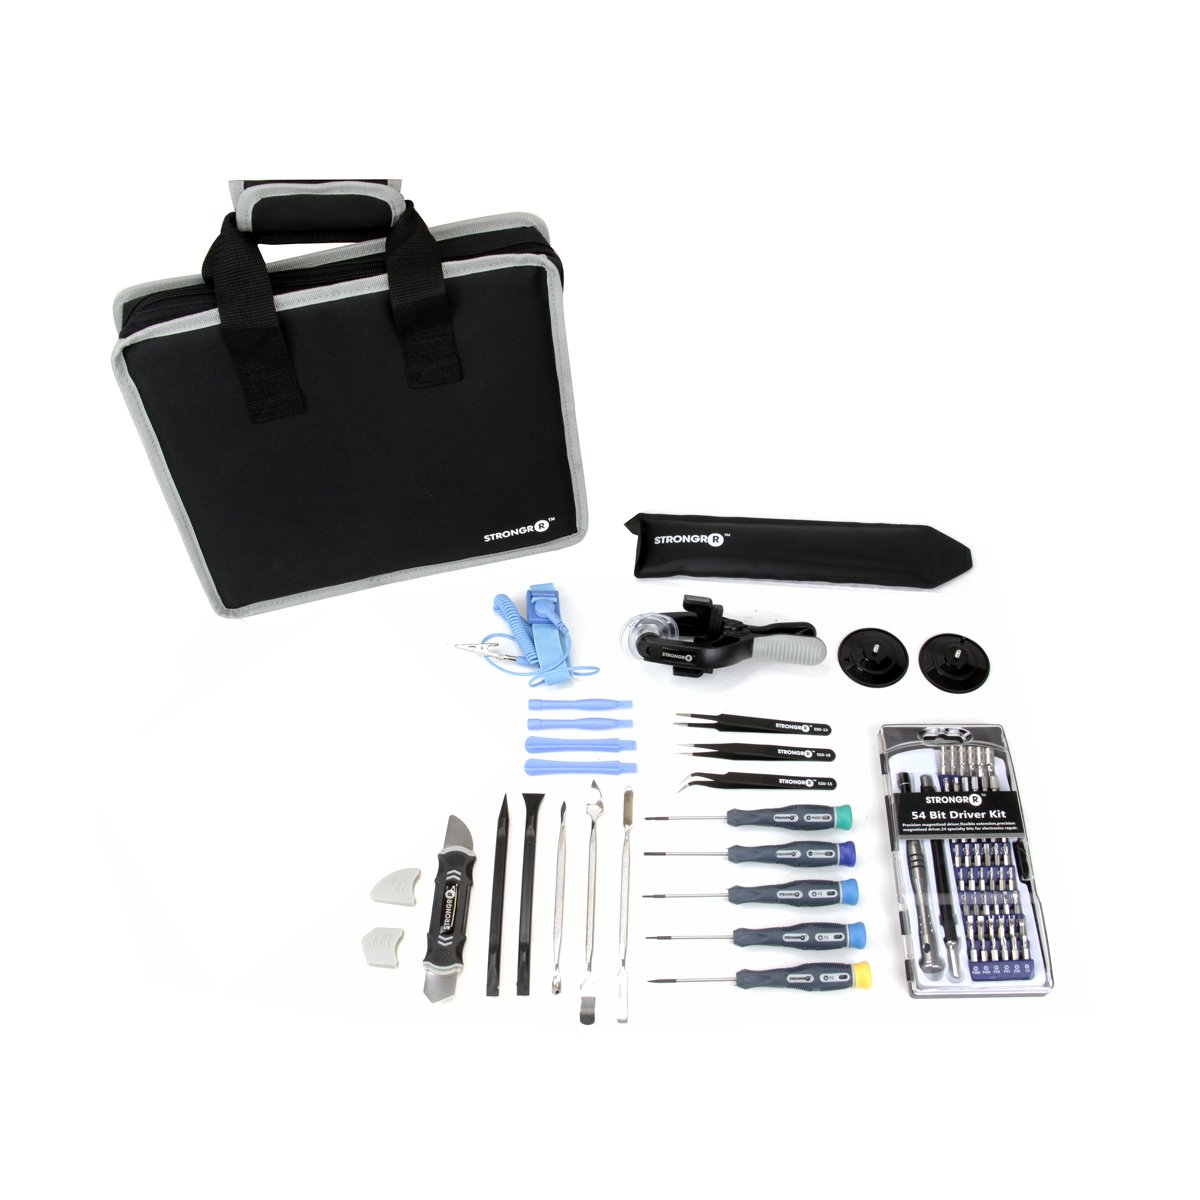 LB1 High Performance Electronics Complete Professional Precision Disassembly Tool Kit for Repairing HP 15-ba097 Repair Hand Tool Set